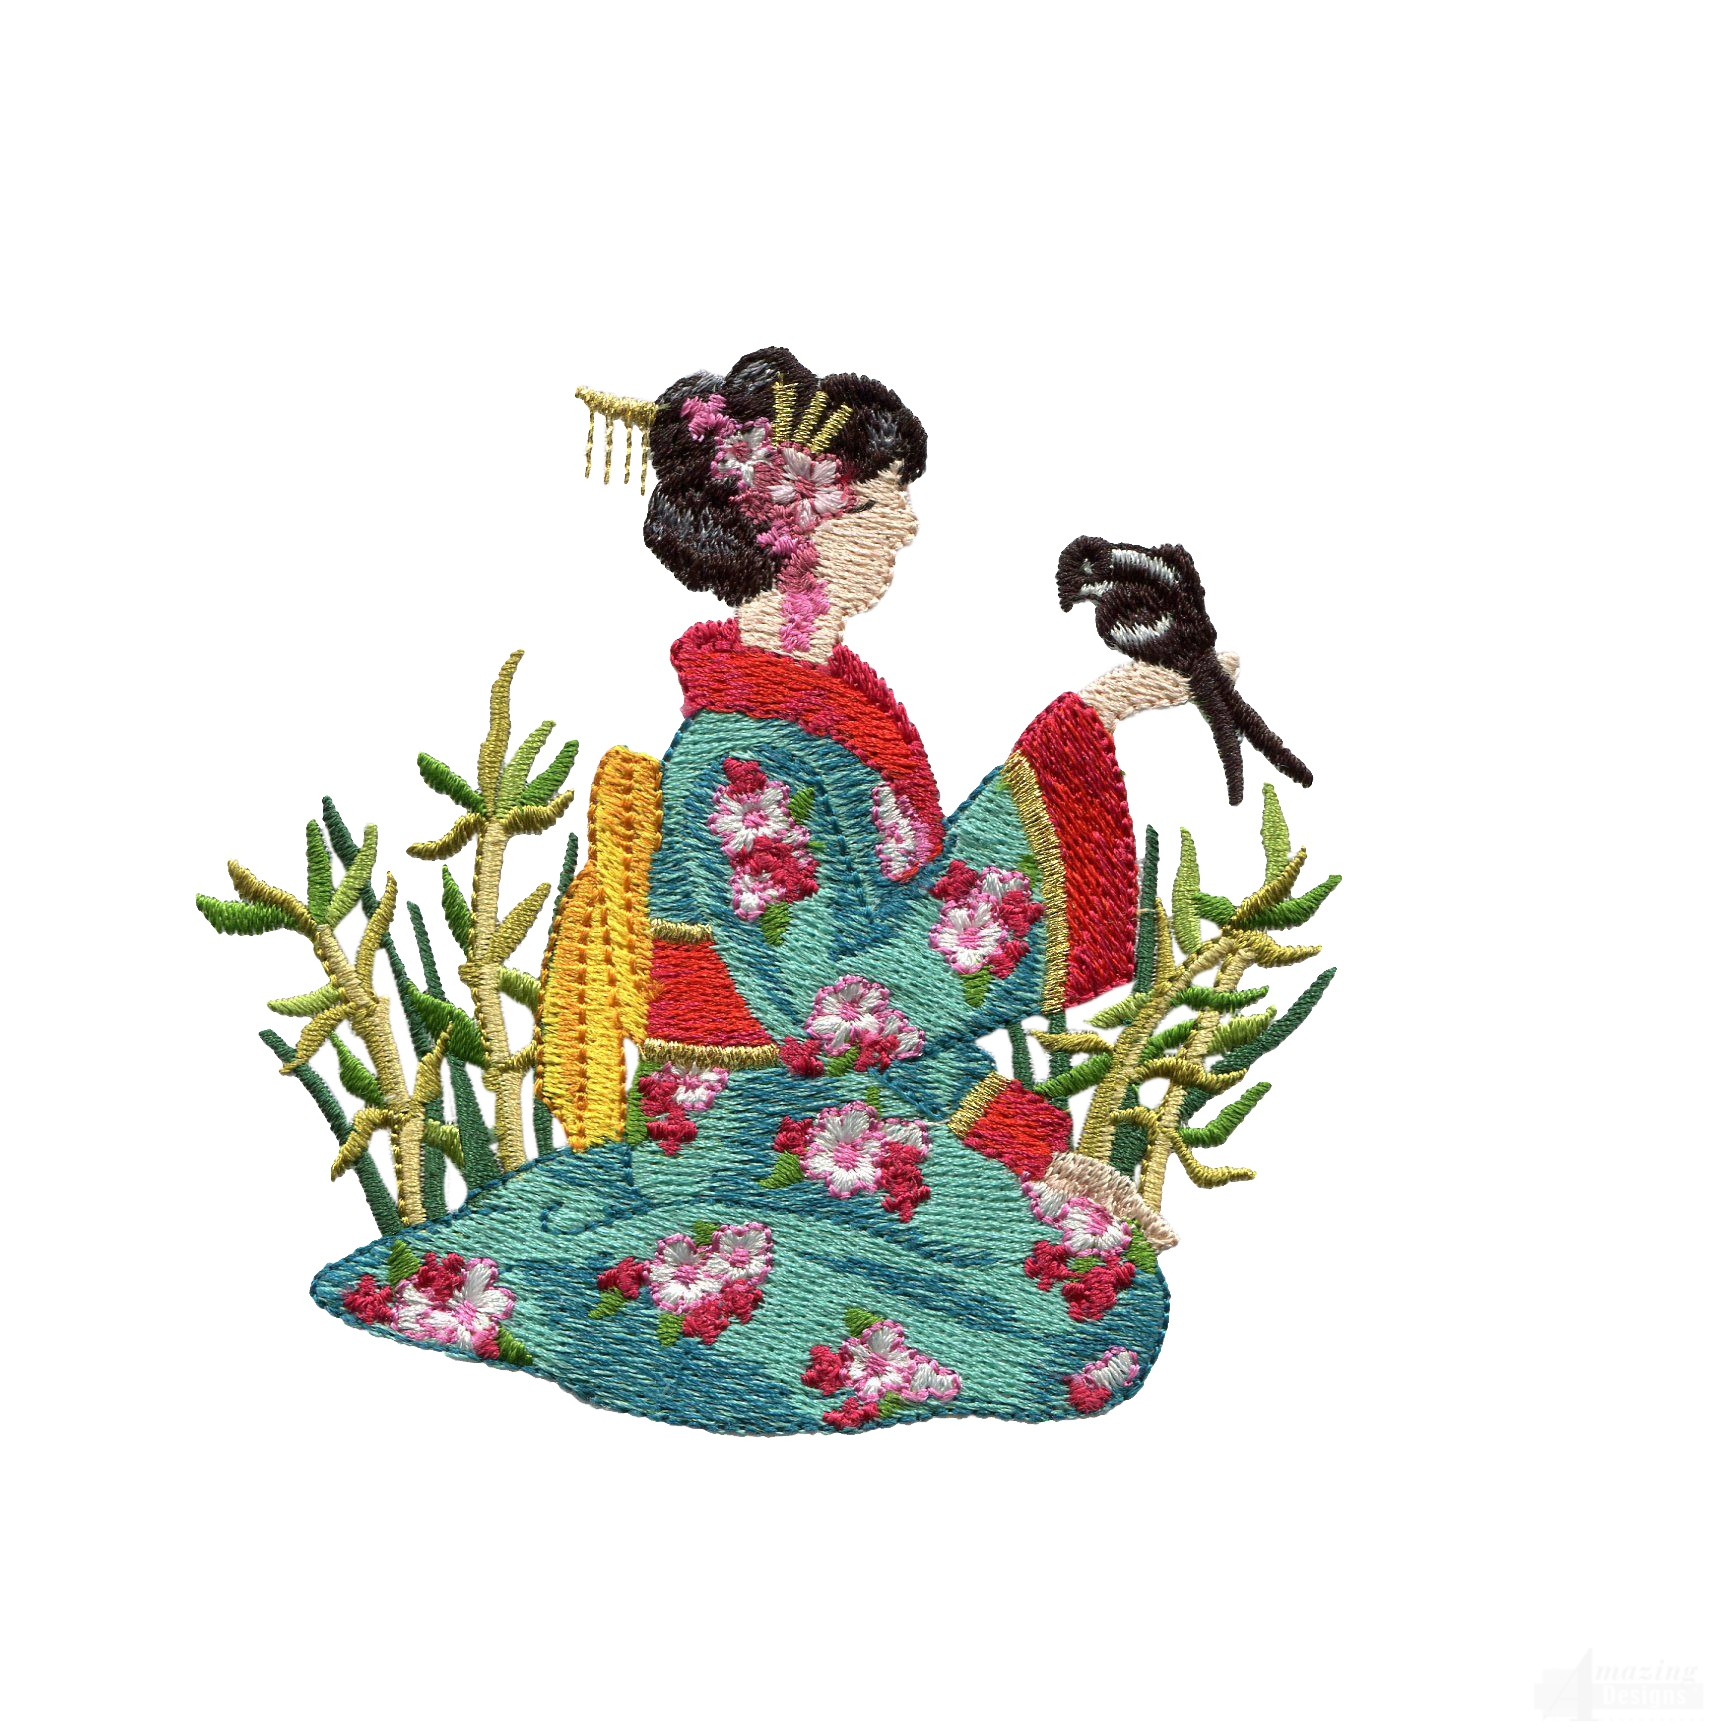 Swngg120 a geishas garden embroidery design for Garden embroidery designs free